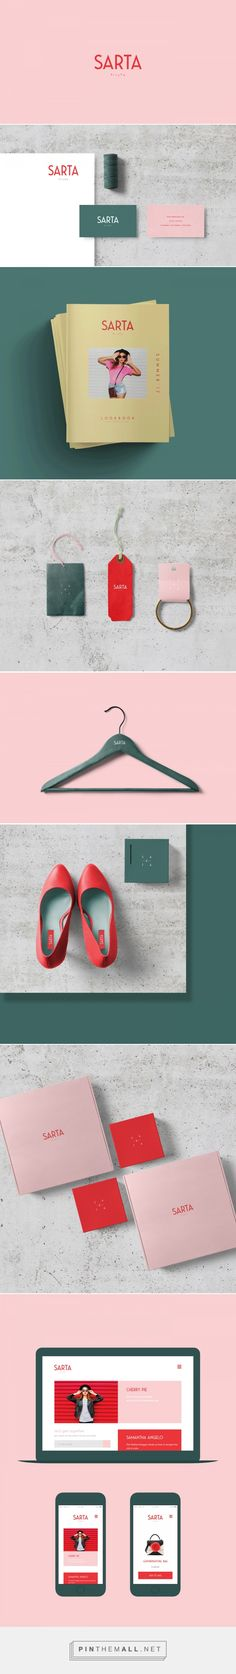 Sarta Milano Fashion Branding by Marka Network | Fivestar Branding Agency – Design and Branding Agency & Curated Inspiration Gallery